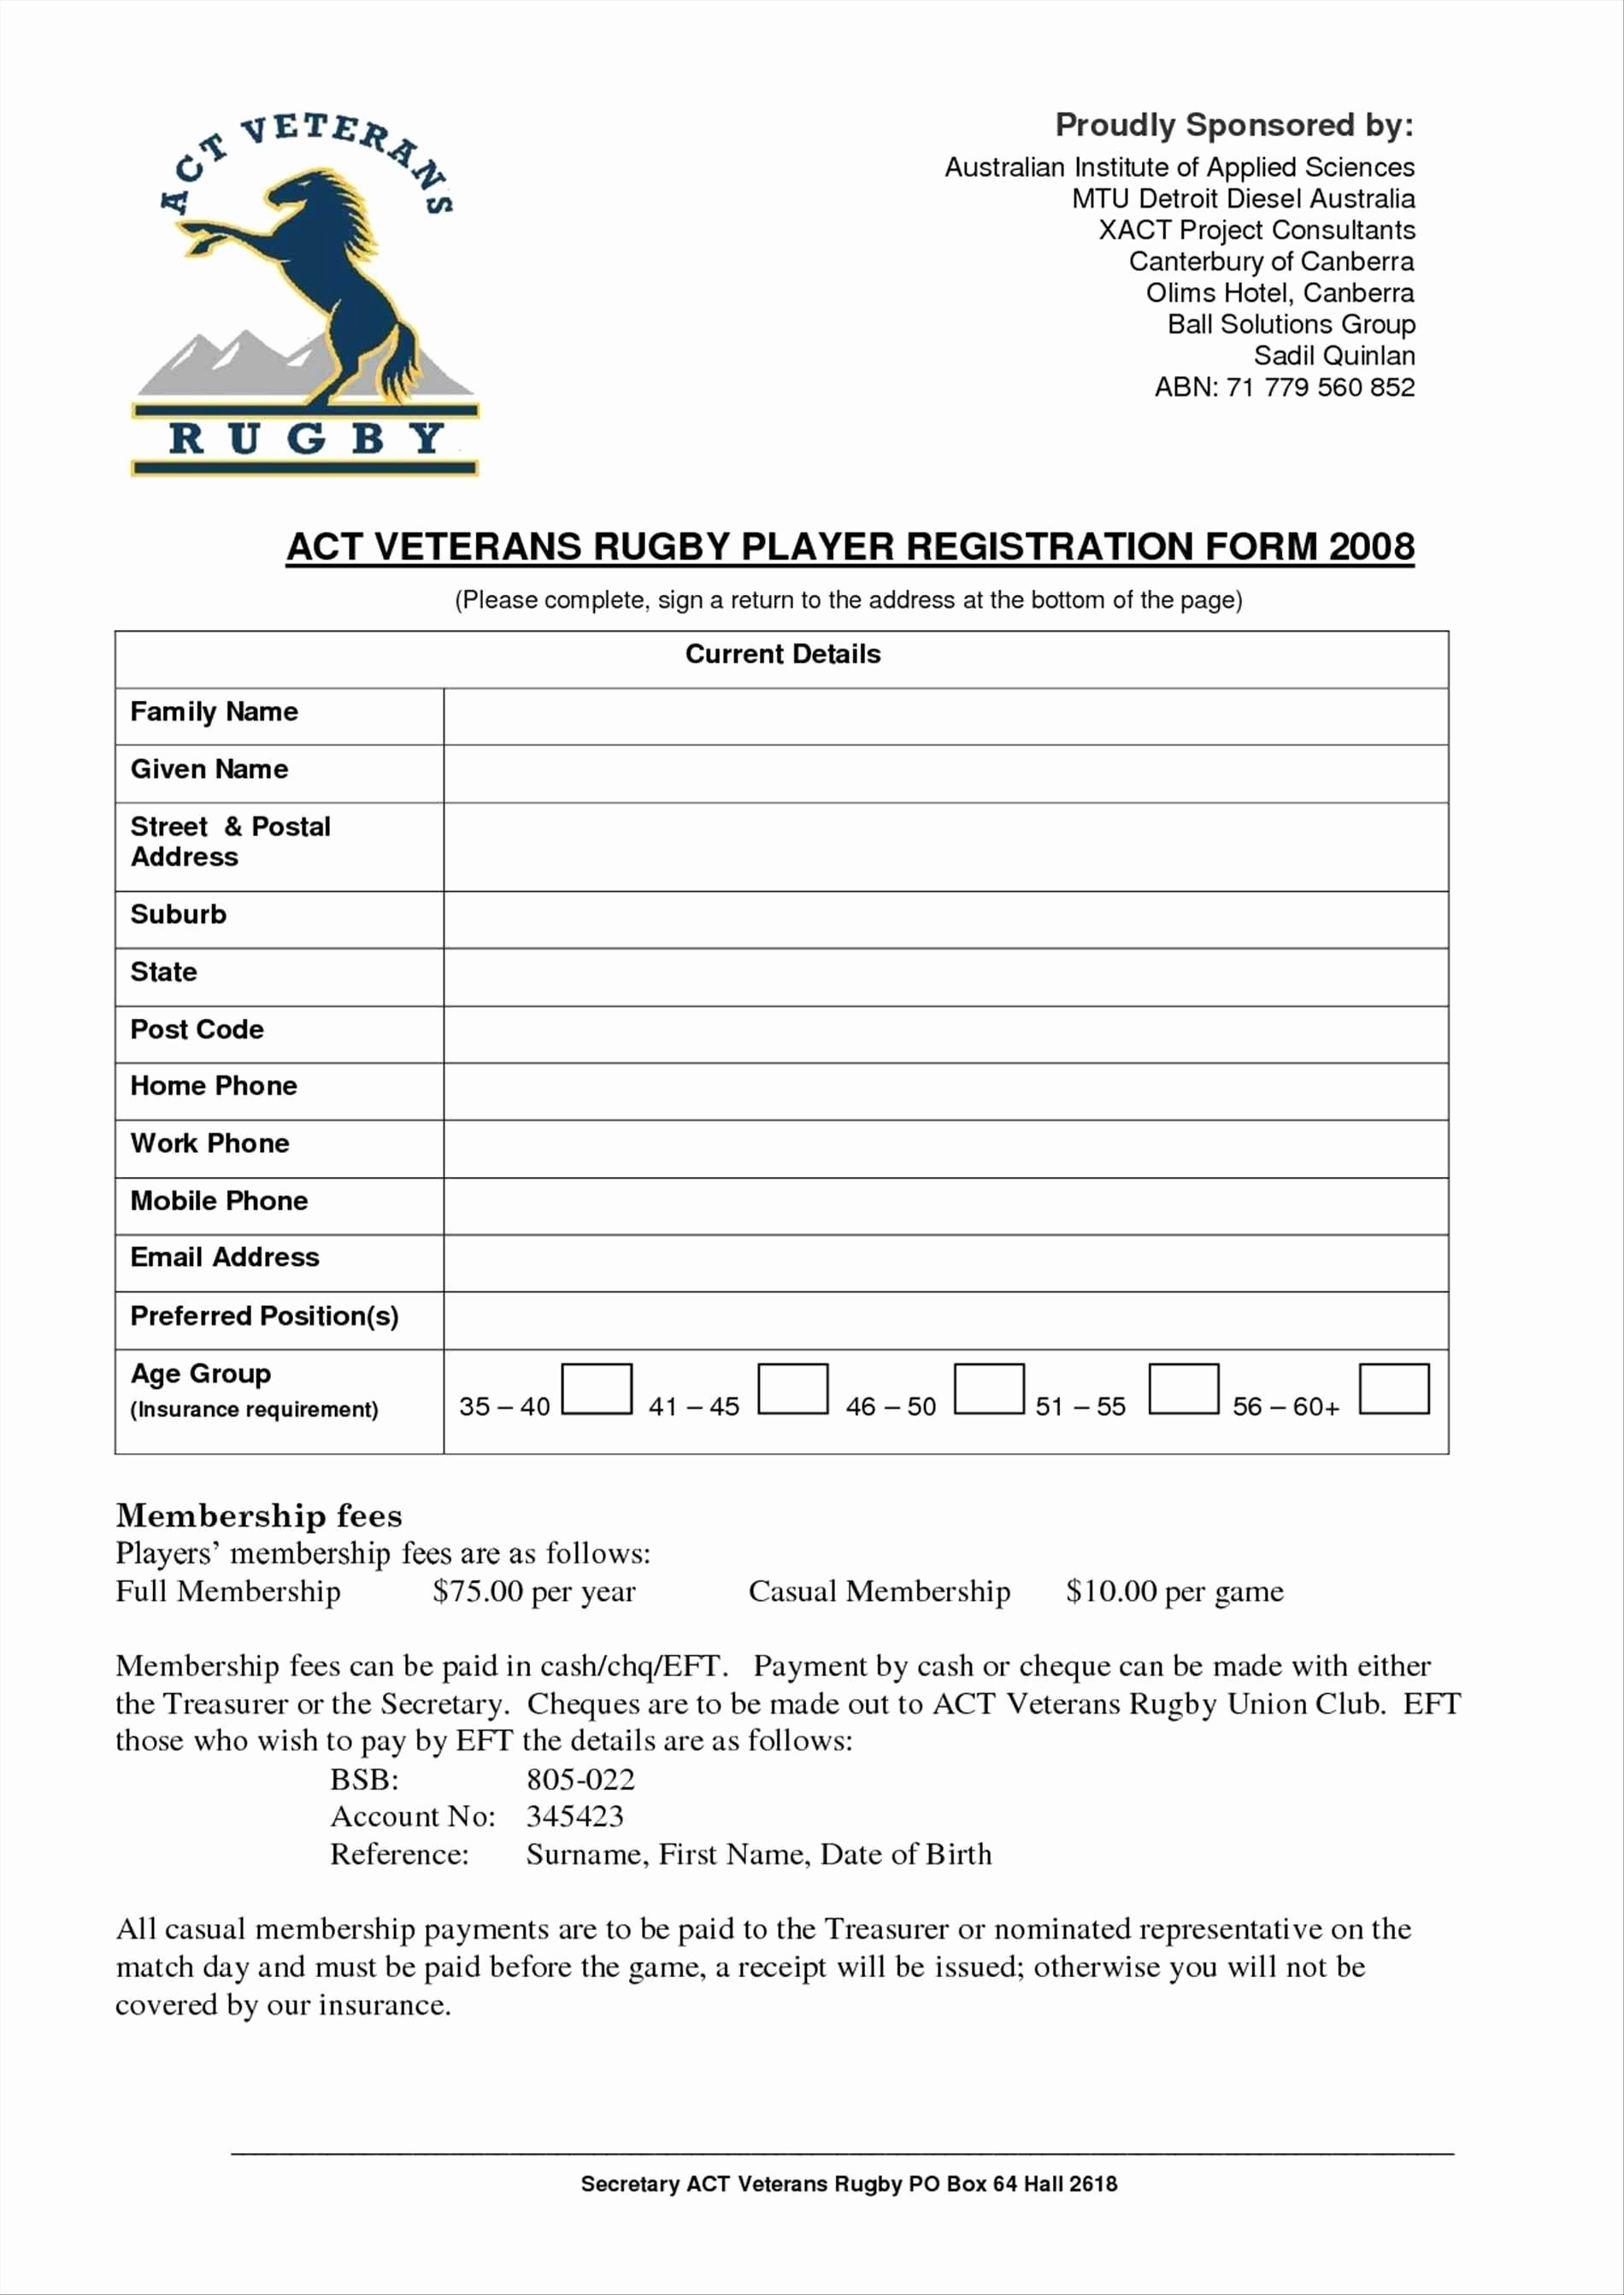 Free Registration forms Template Fresh Free Registration form Template Word